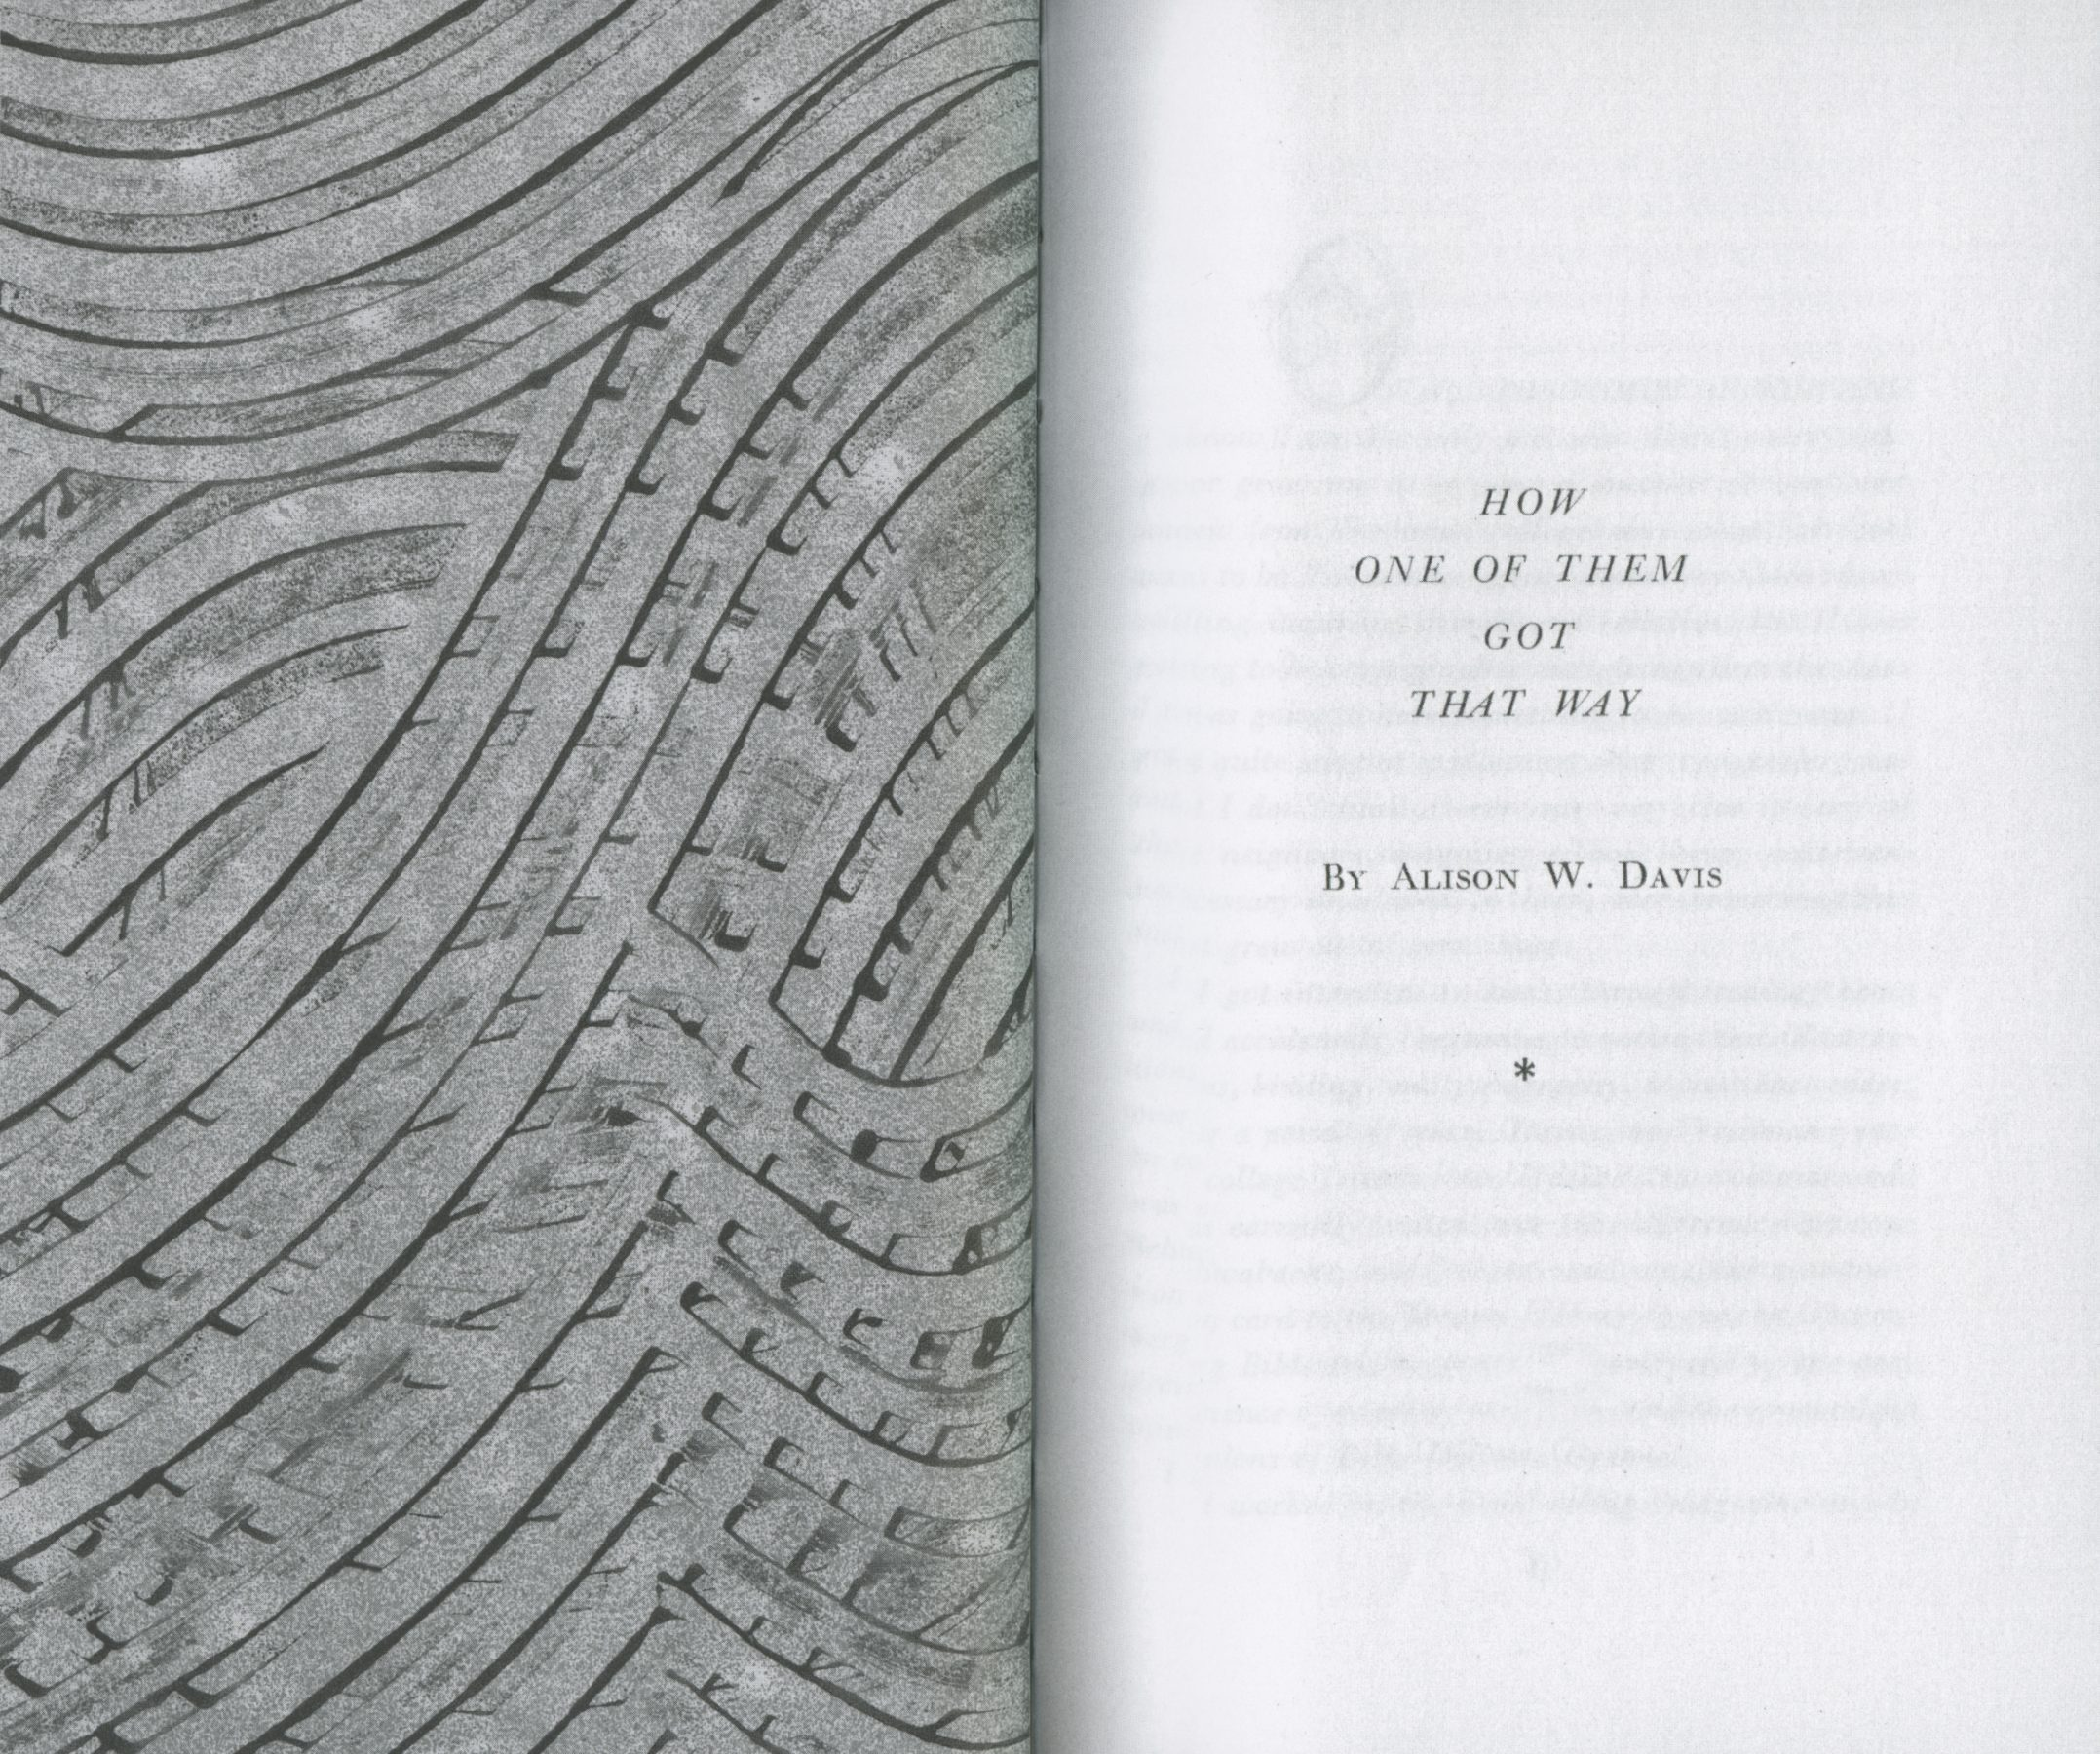 5_the_natural_enemies_of_books_2400x2005-2155x1800